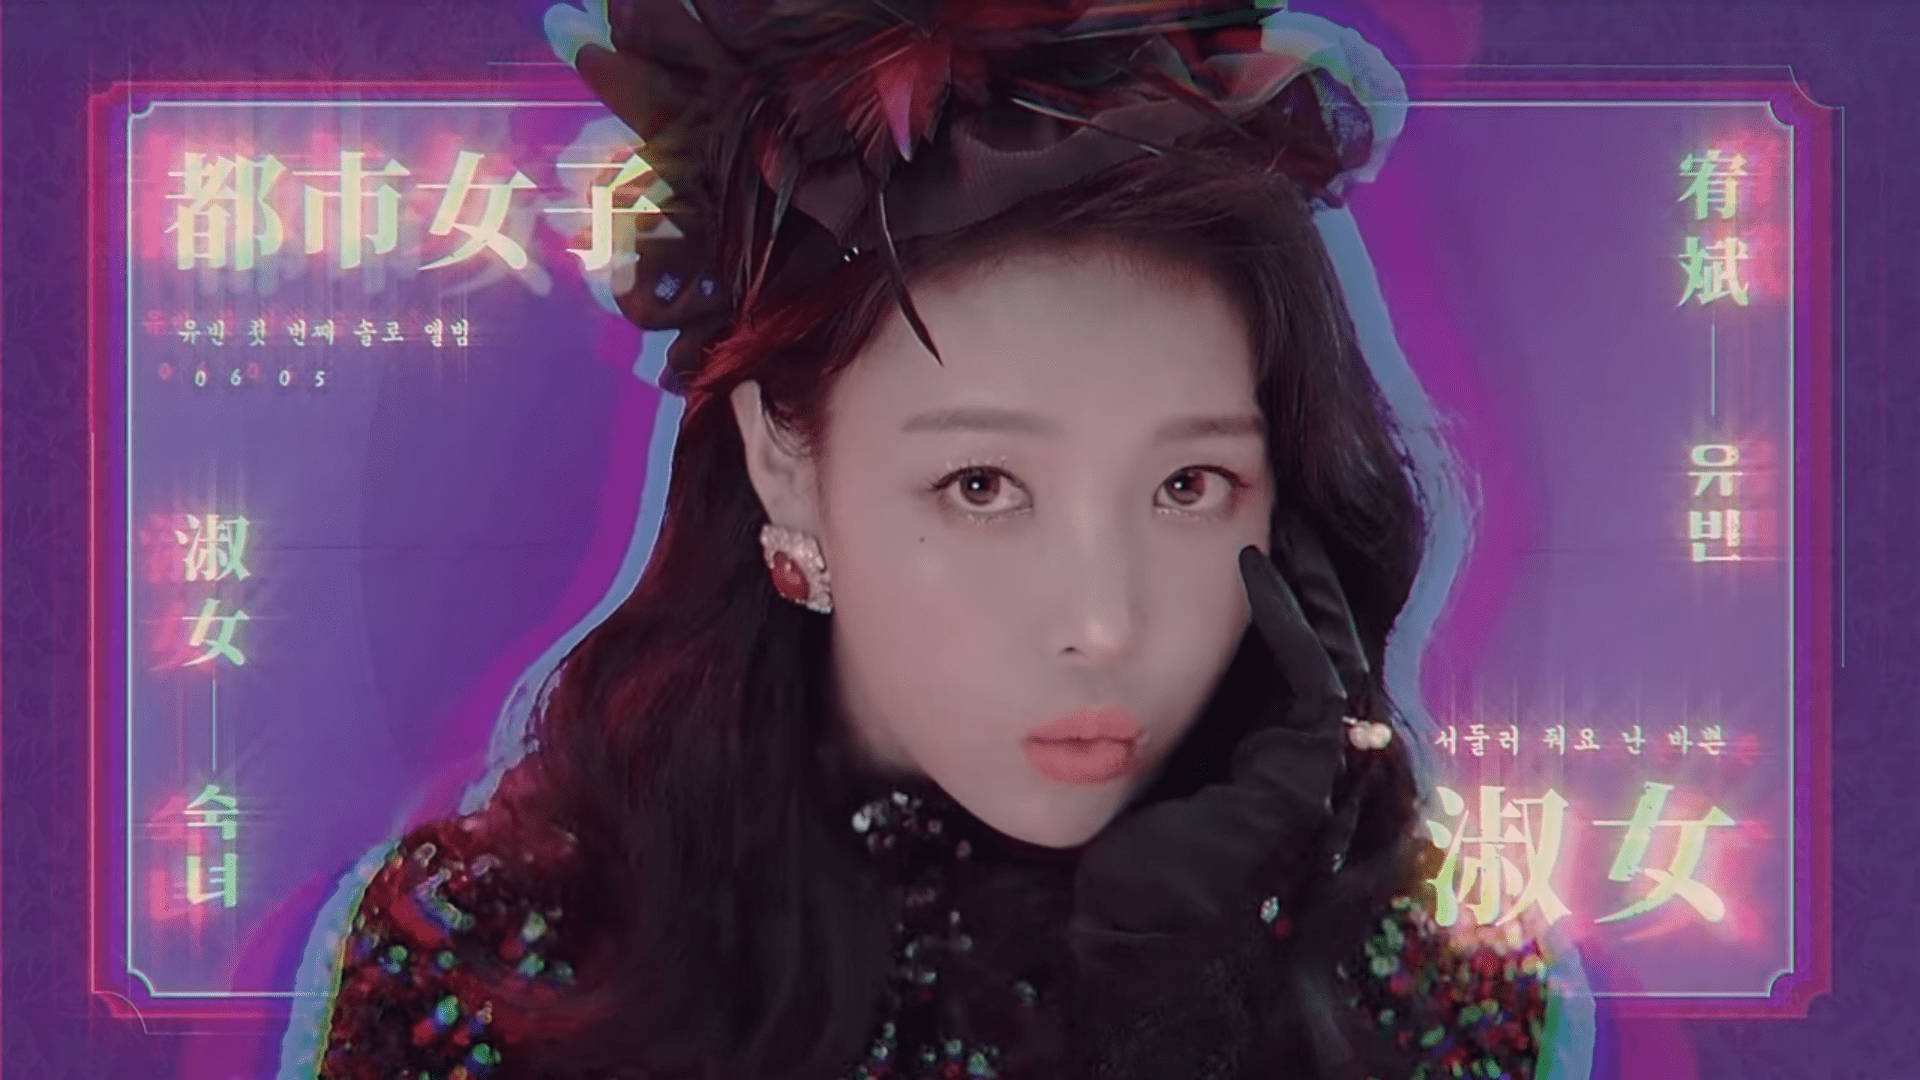 """WATCH: Wonder Girls' Yubin Makes Official Solo Debut With """"Lady"""" MV"""